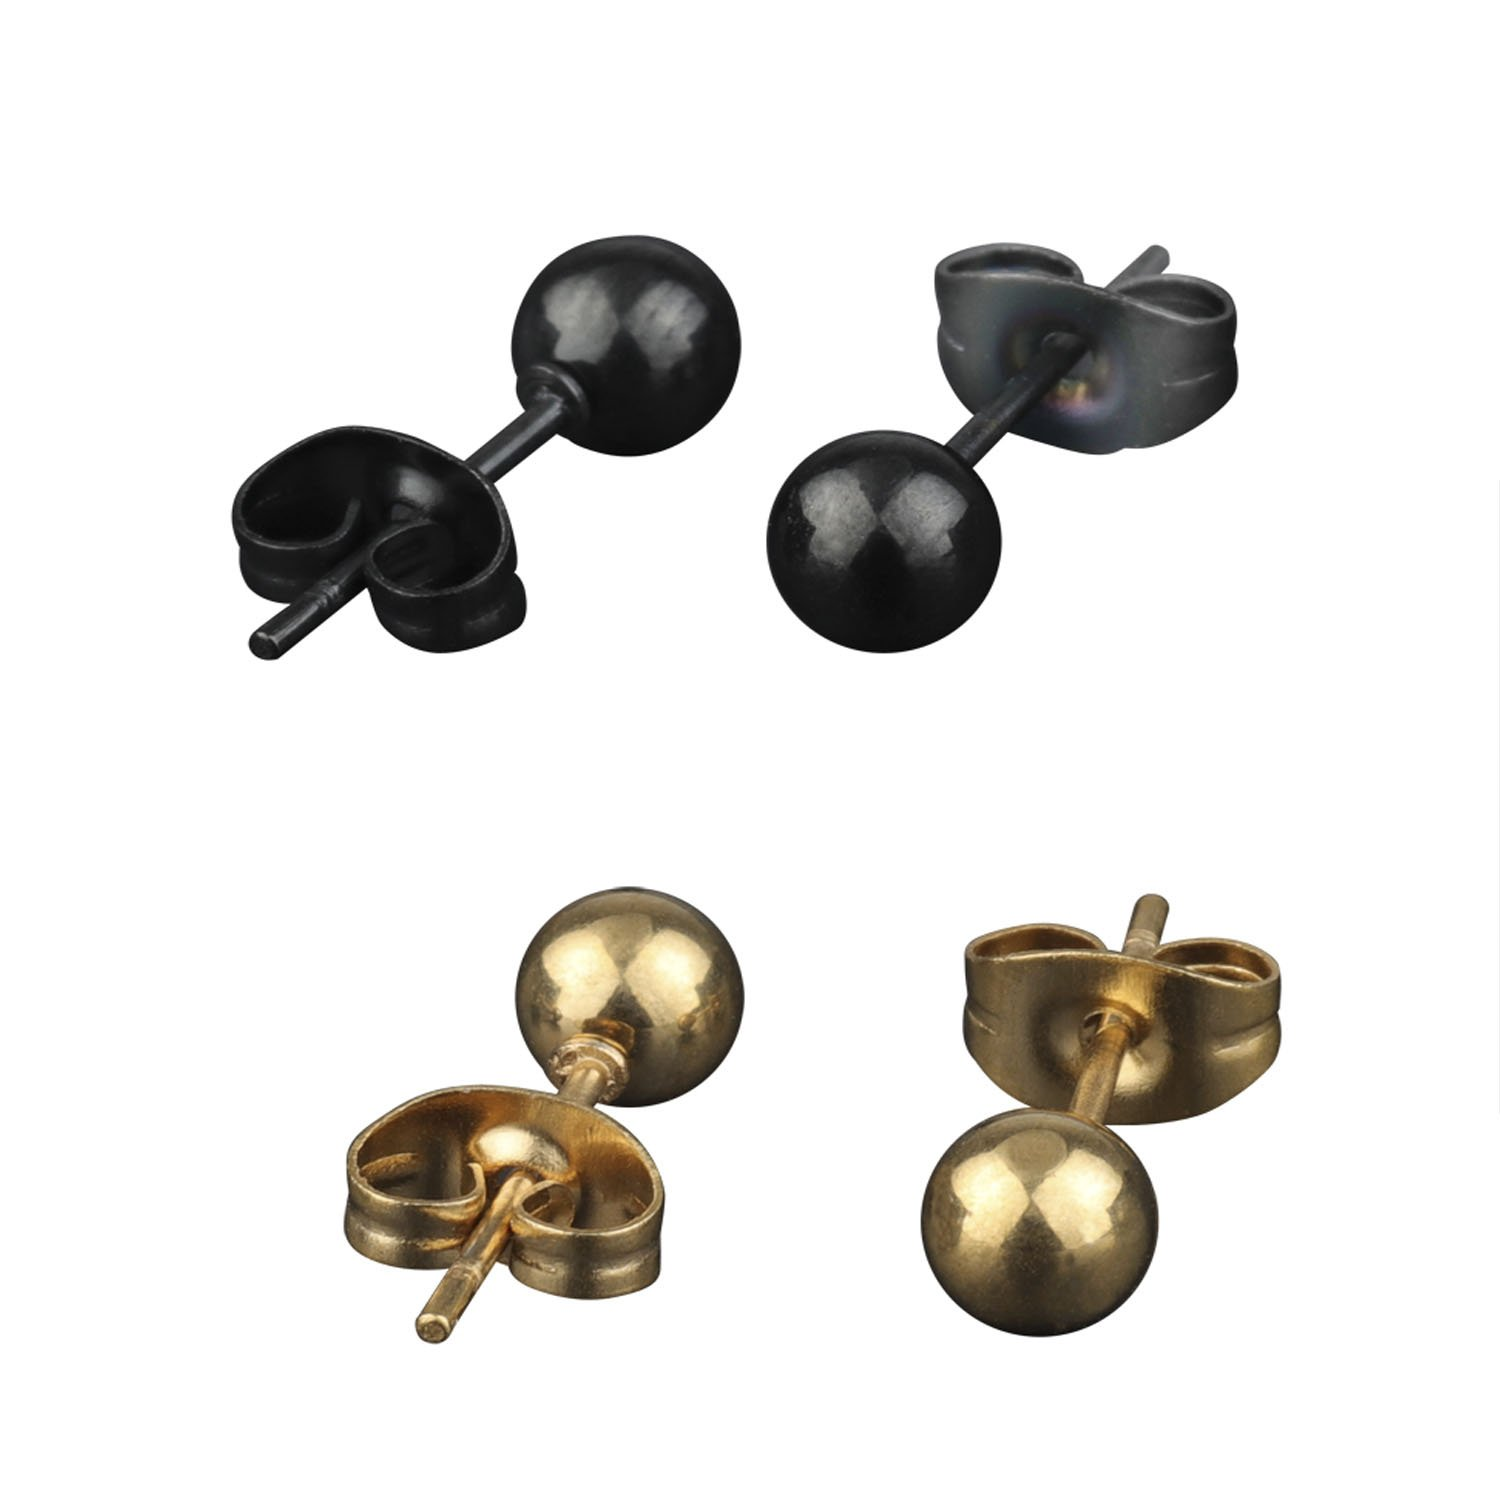 A++ 316L Surgical Stainless Steel Round Ball Studs Earrings 2 Pair Black & Gold 4mm Ball